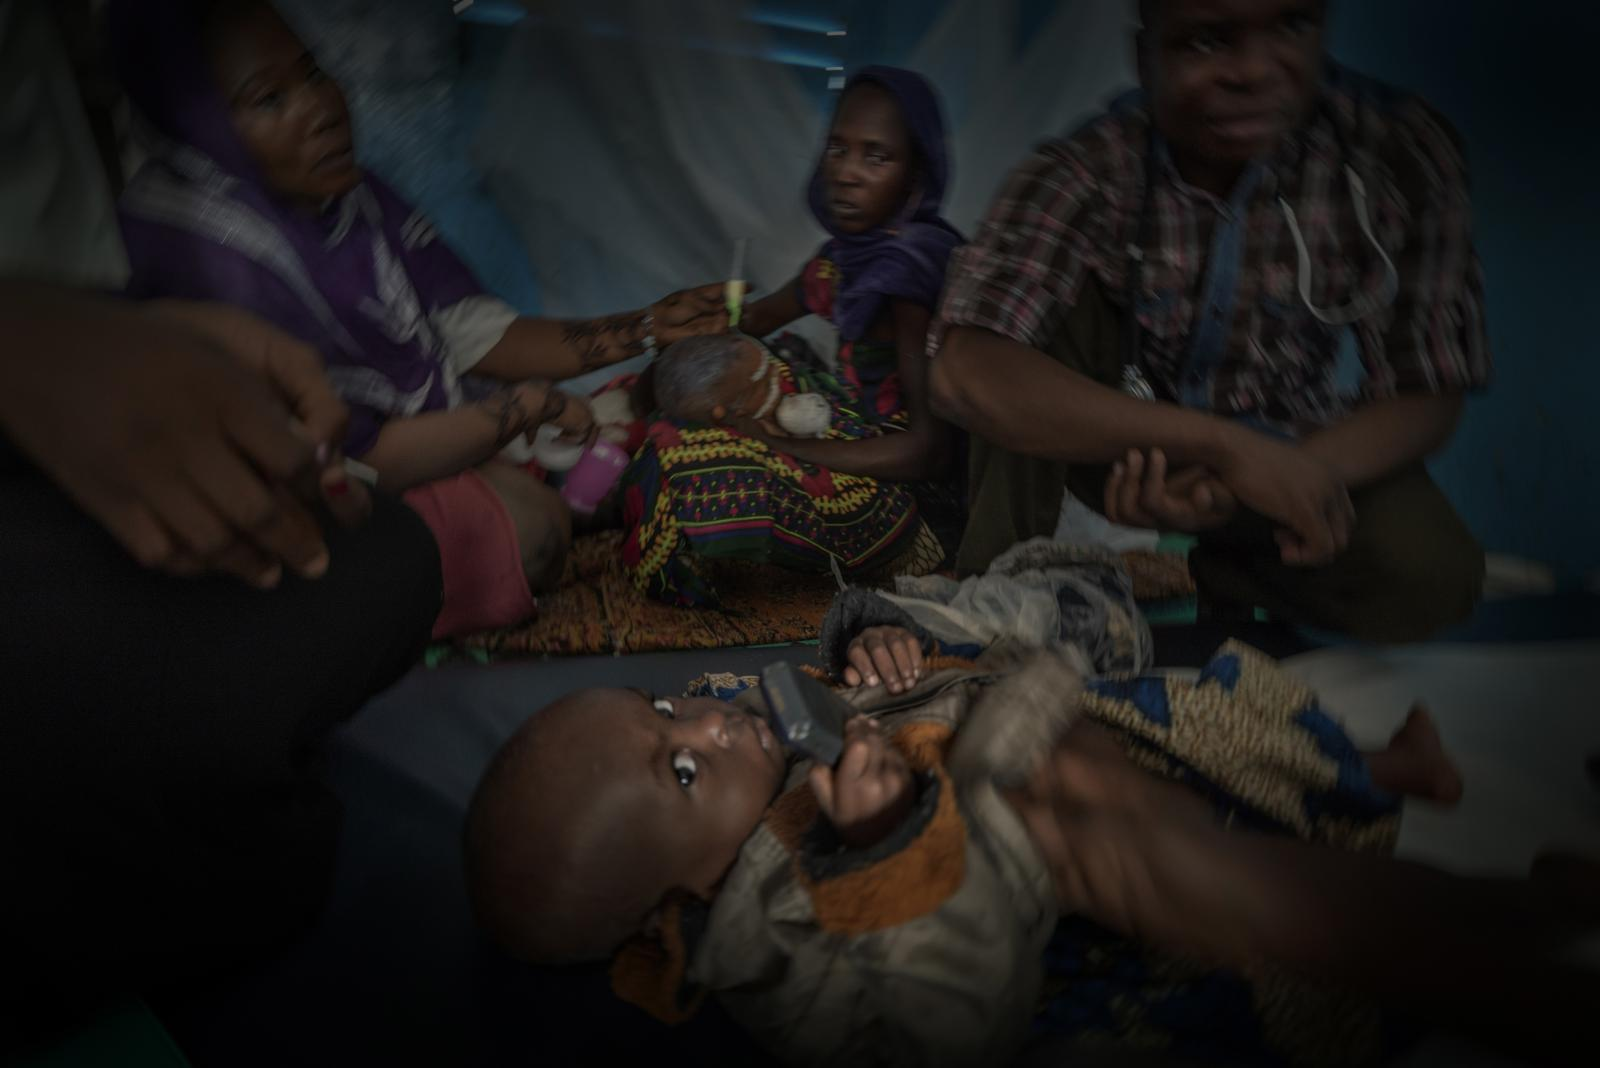 Bokoro: many families depart from this region on the route through Libya to Europe in search of a better future (Chad).